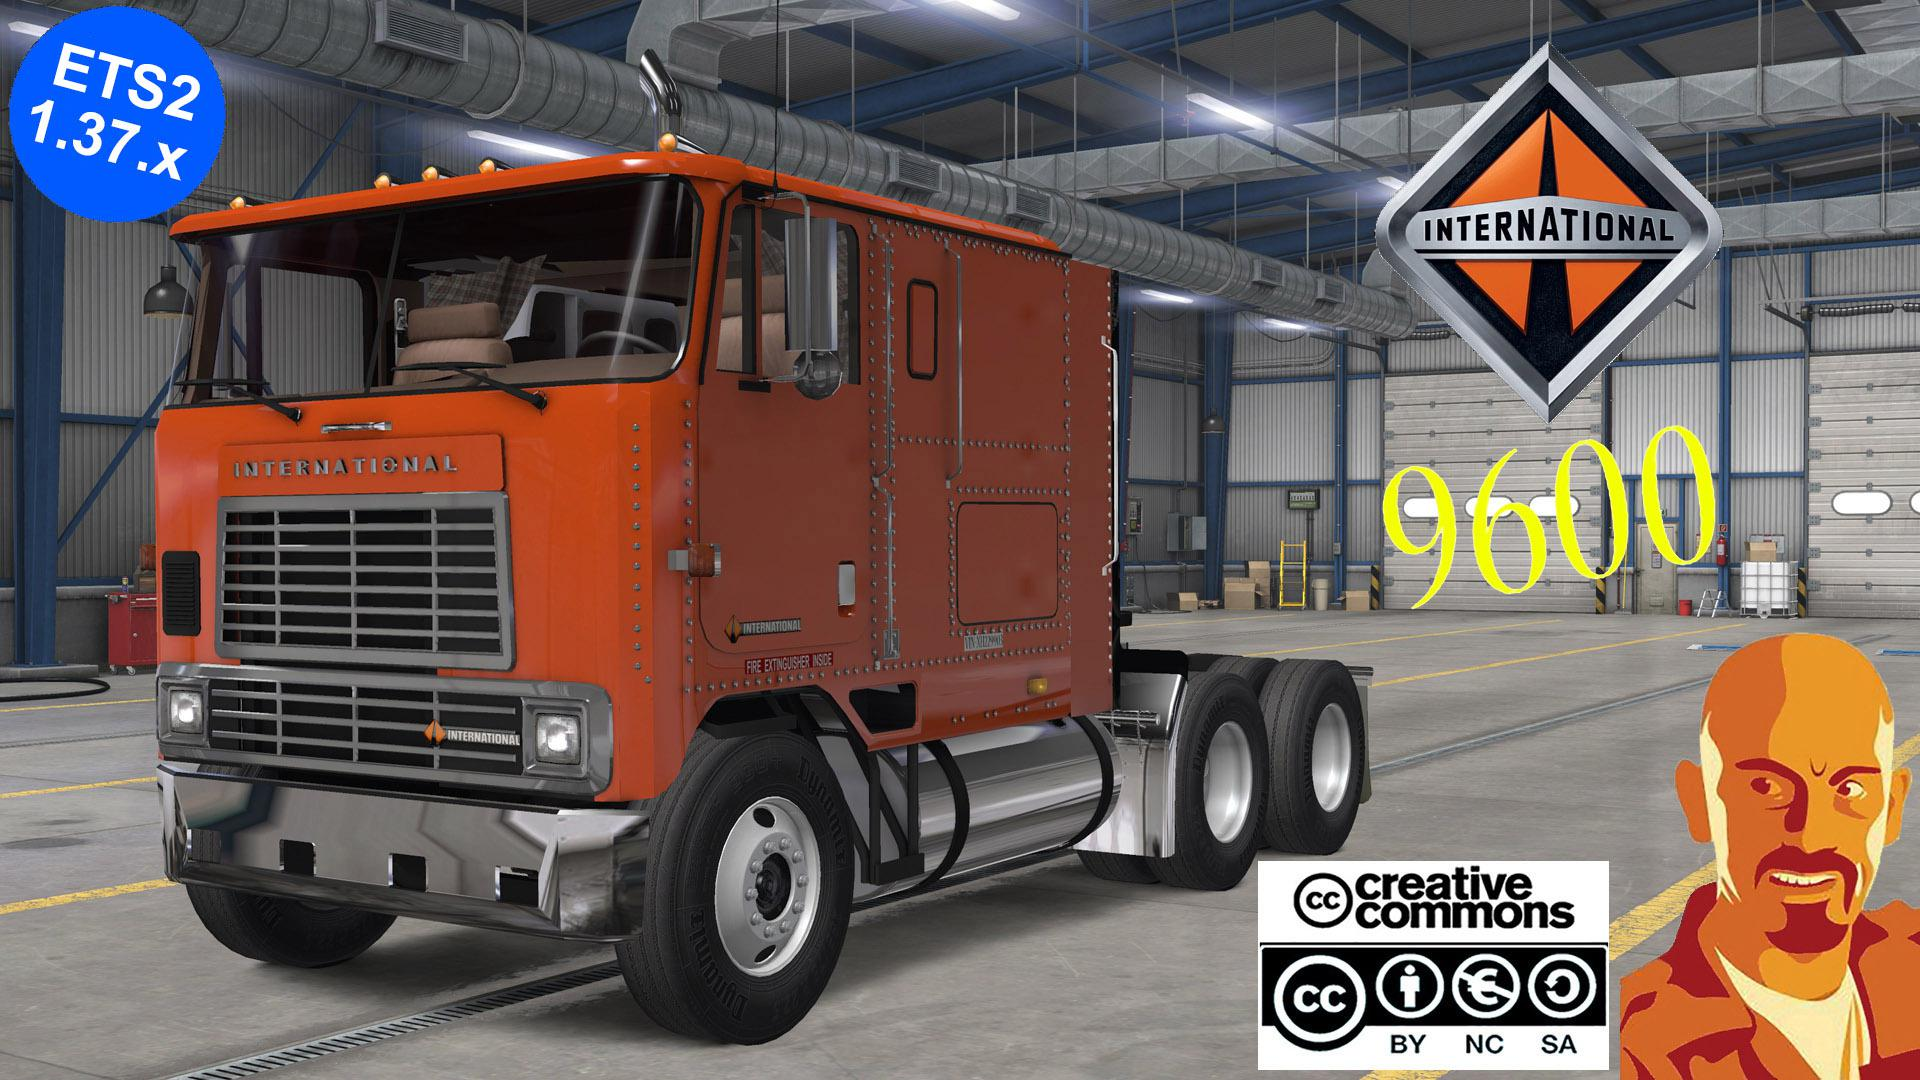 ETS2 - International 9600 Reworked Truck (1.37.x)